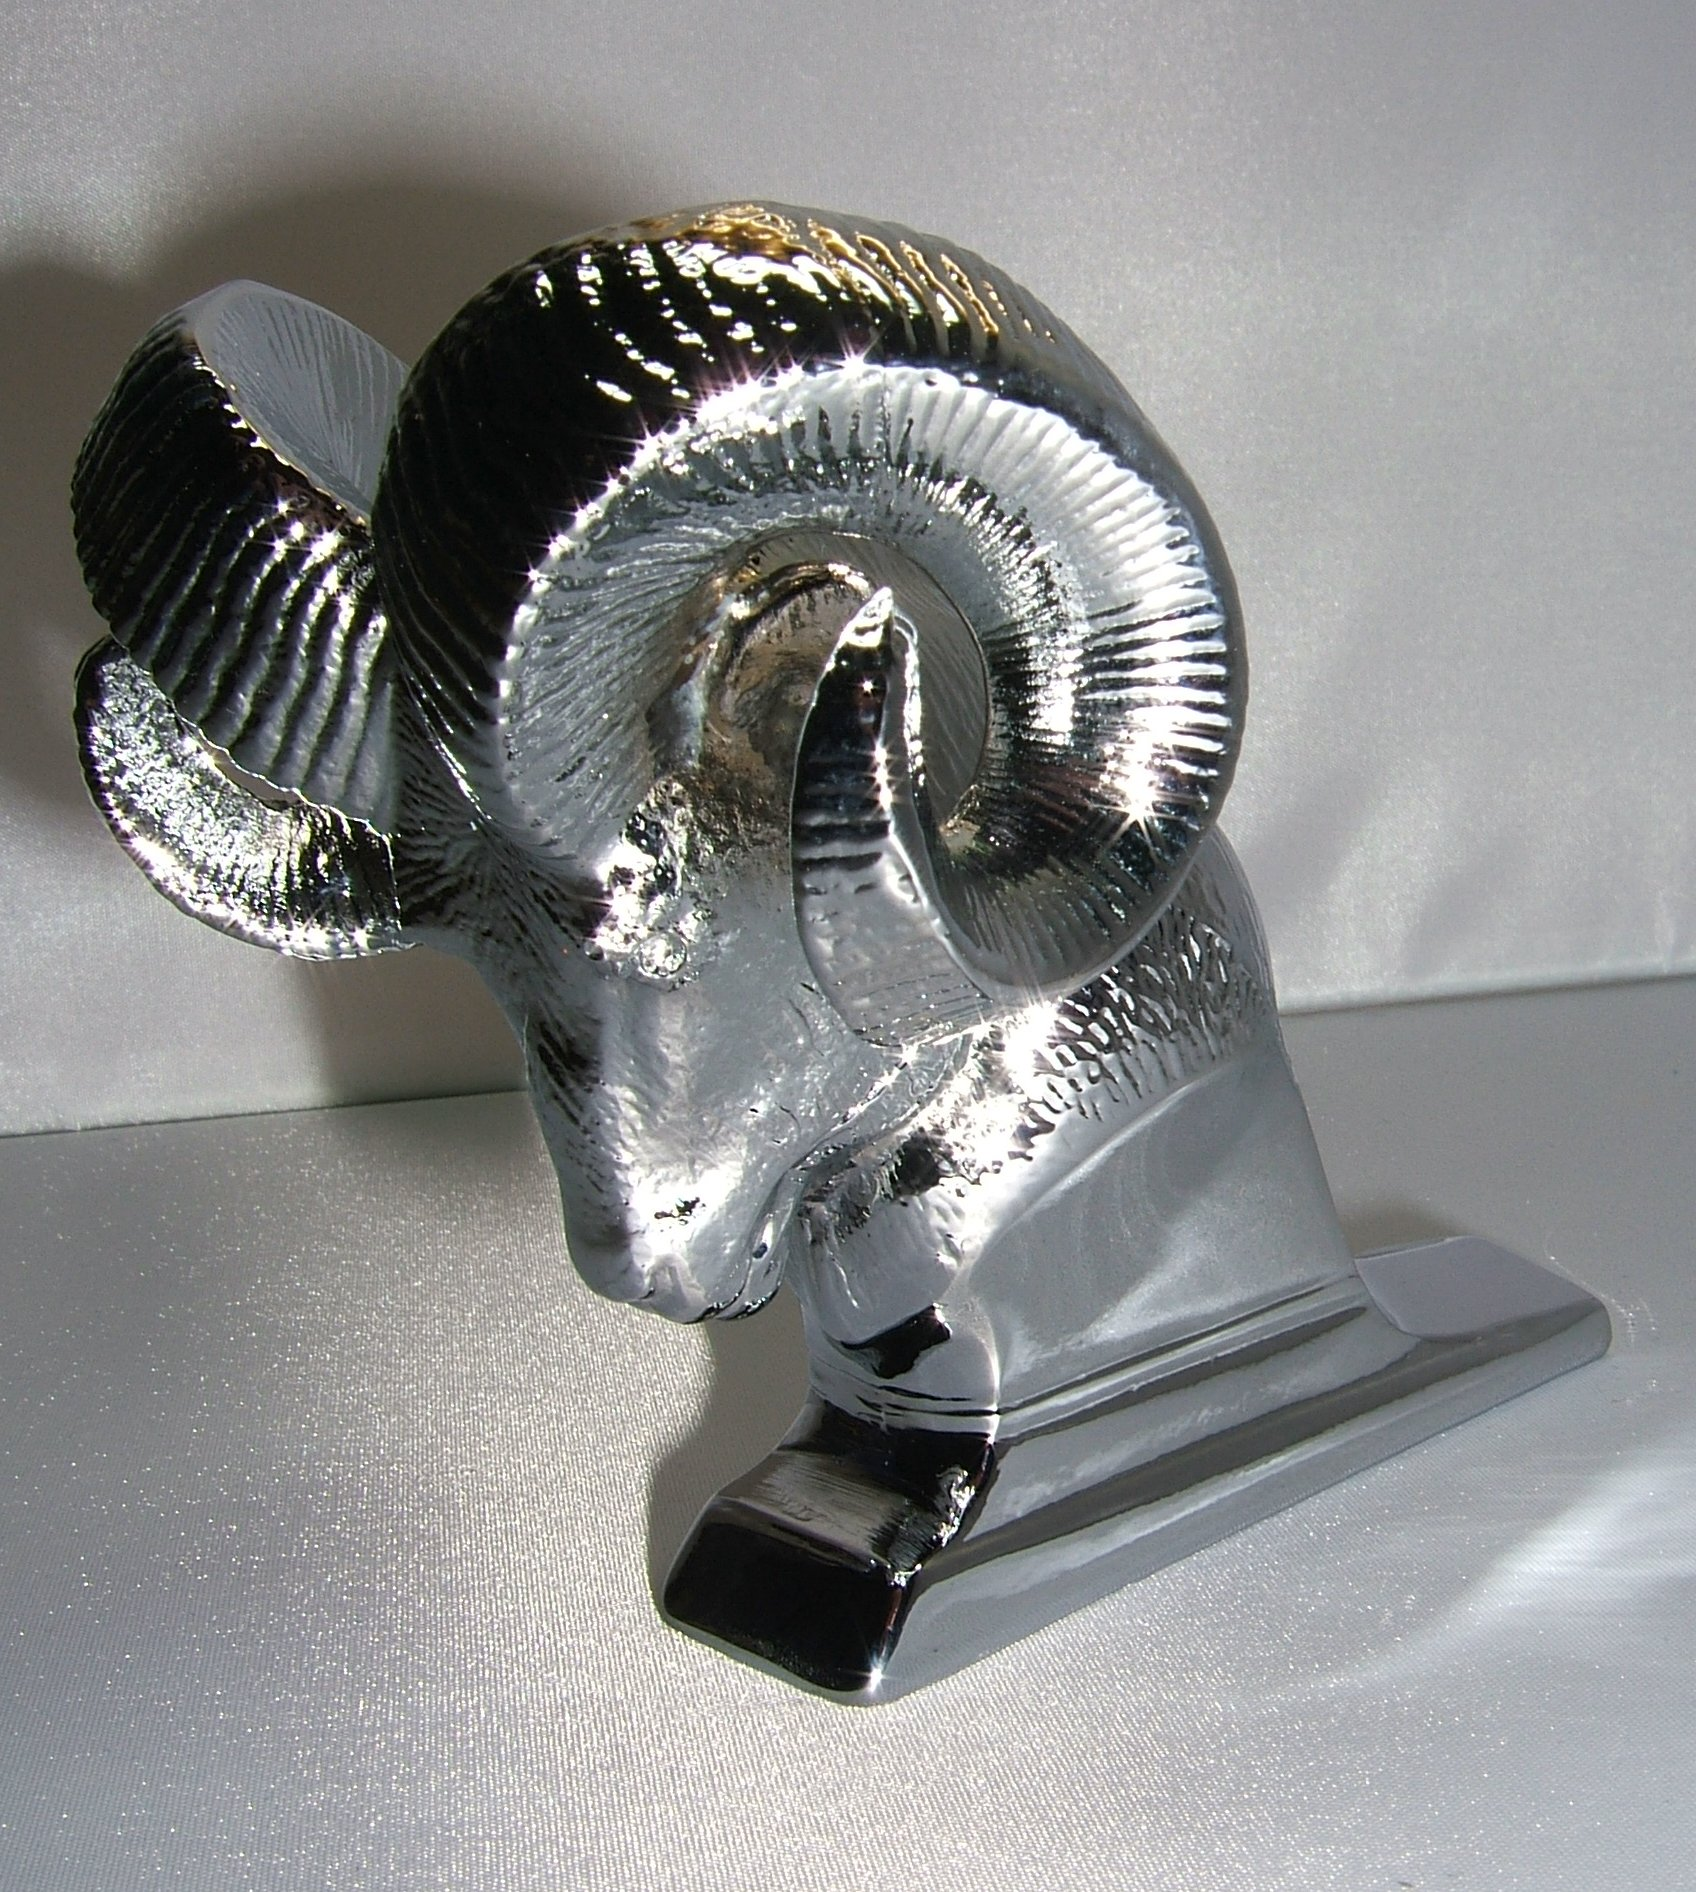 Small Rams Head Bonnet Mascot -Chrome Plated